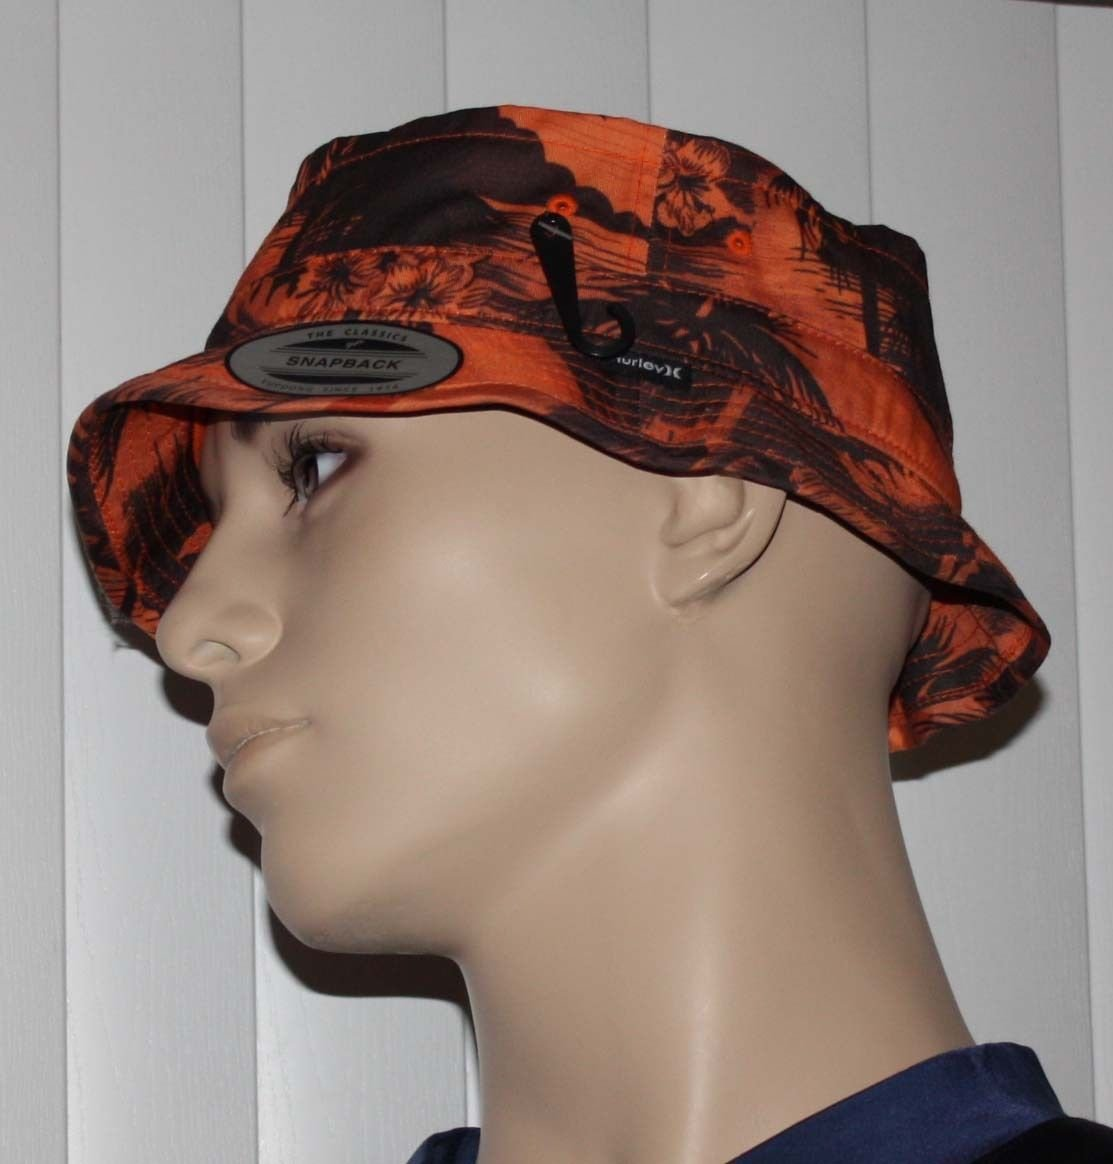 Hurley SHORE CRUISER Men's Orange/Brown Beach Graphics Bucket Hat 14776